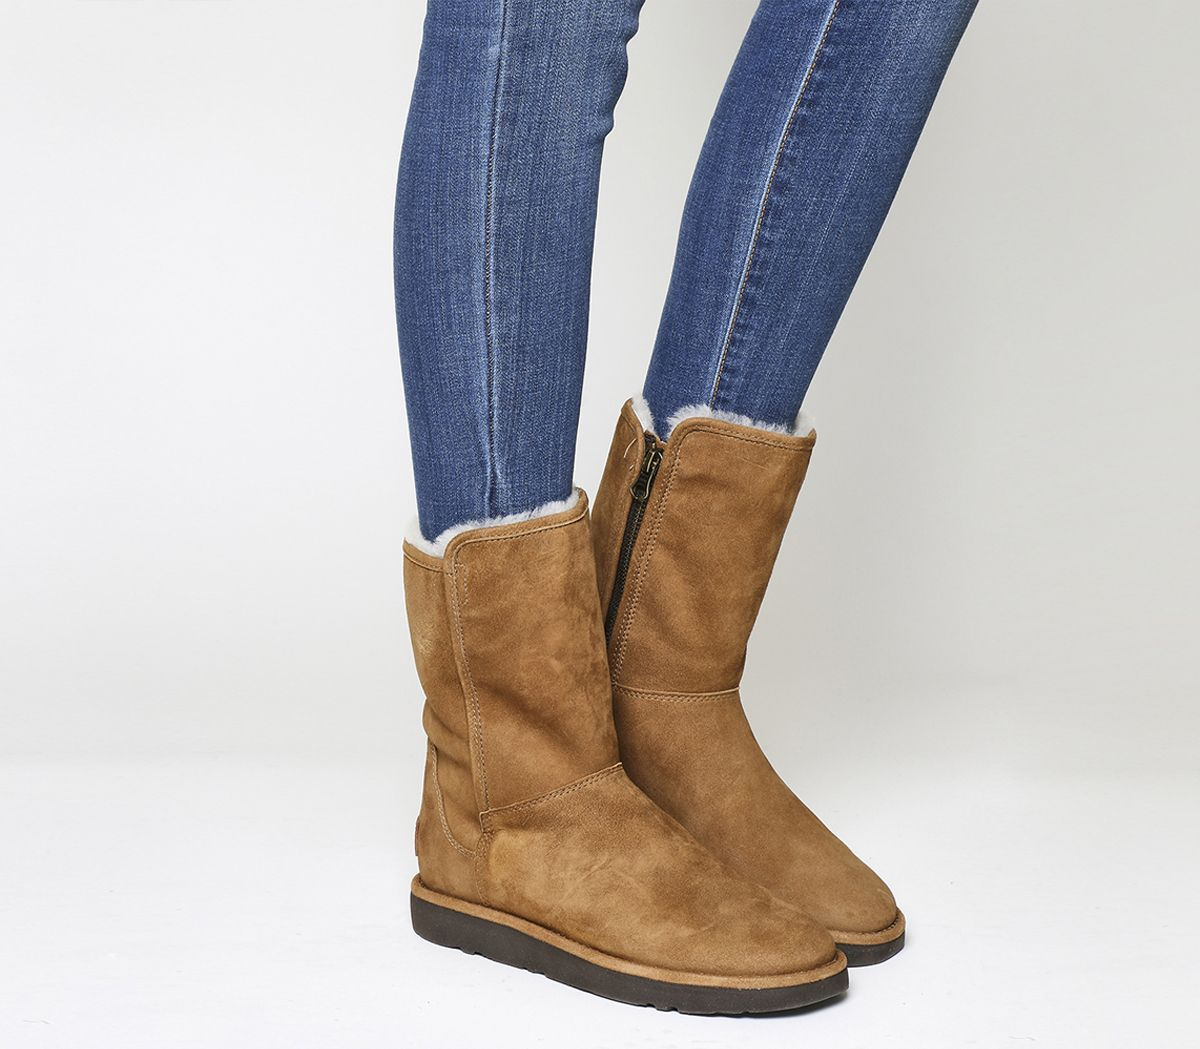 39e423899384 UGG Classic Lux Abree Short Chestnut Suede - Ankle Boots